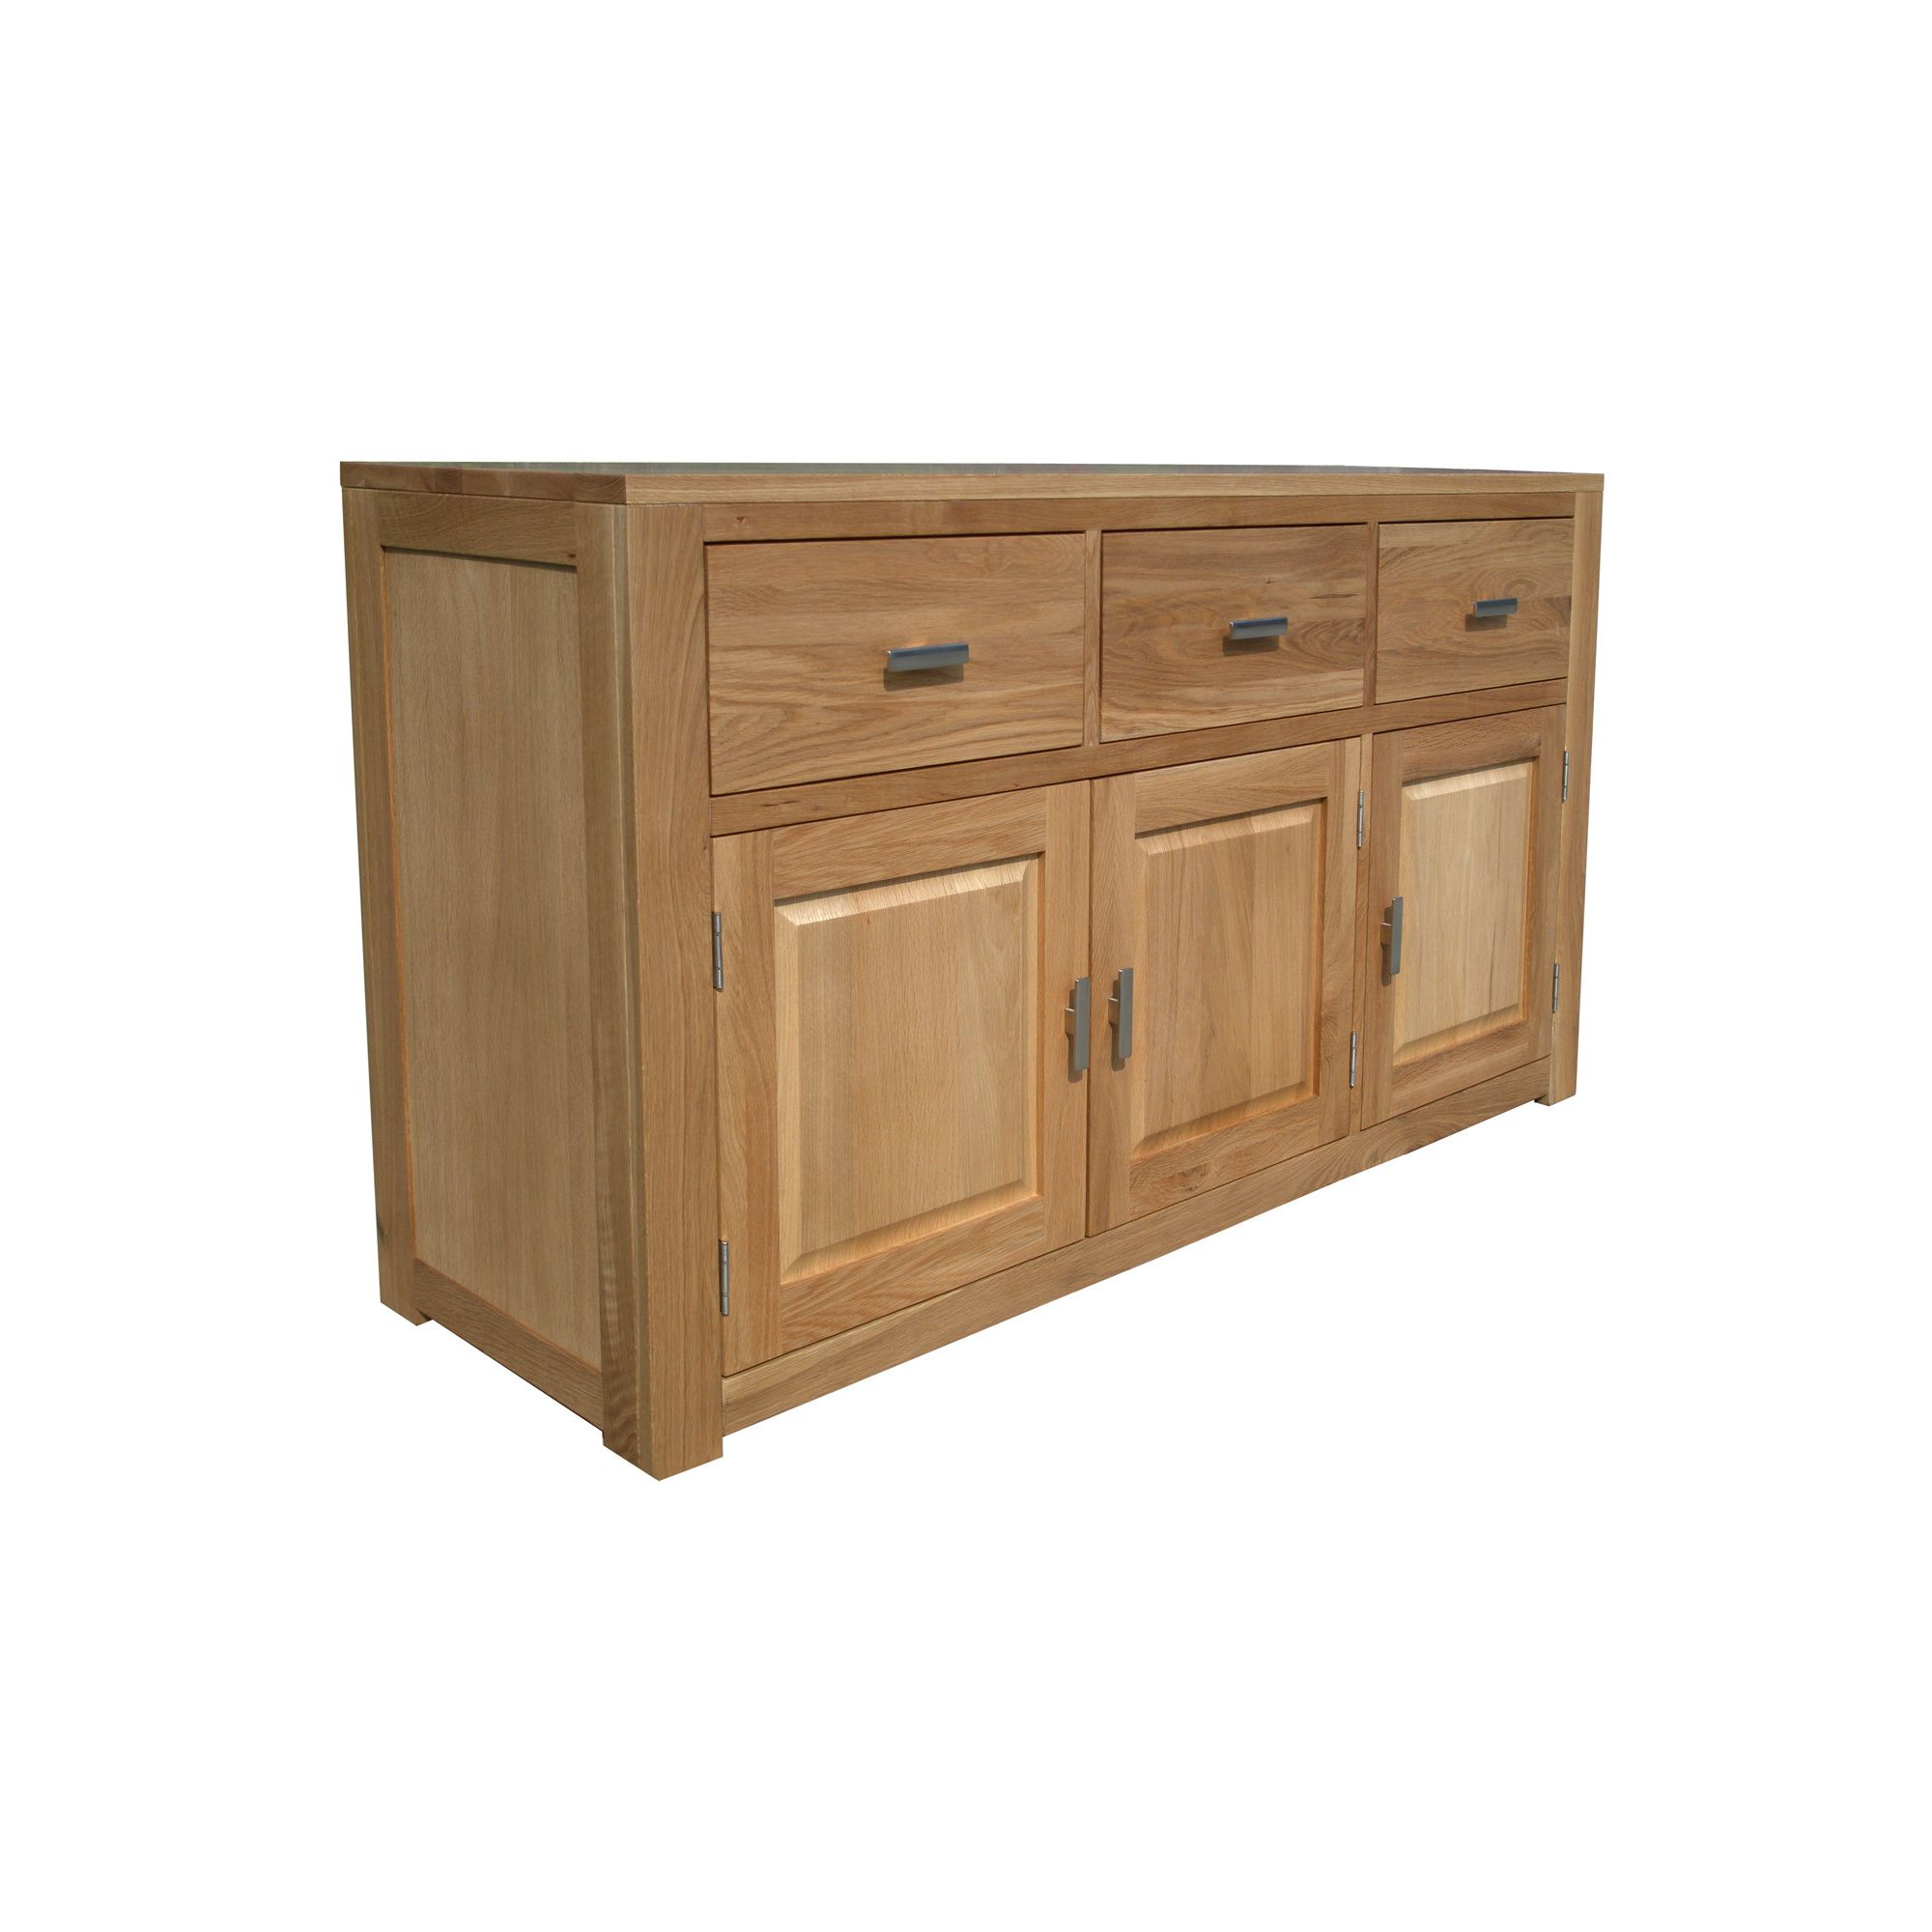 Home Zone Furniture Churchill Oak 2010 Three Drawer / Three Door Sideboard in Natural Oak at Tescos Direct